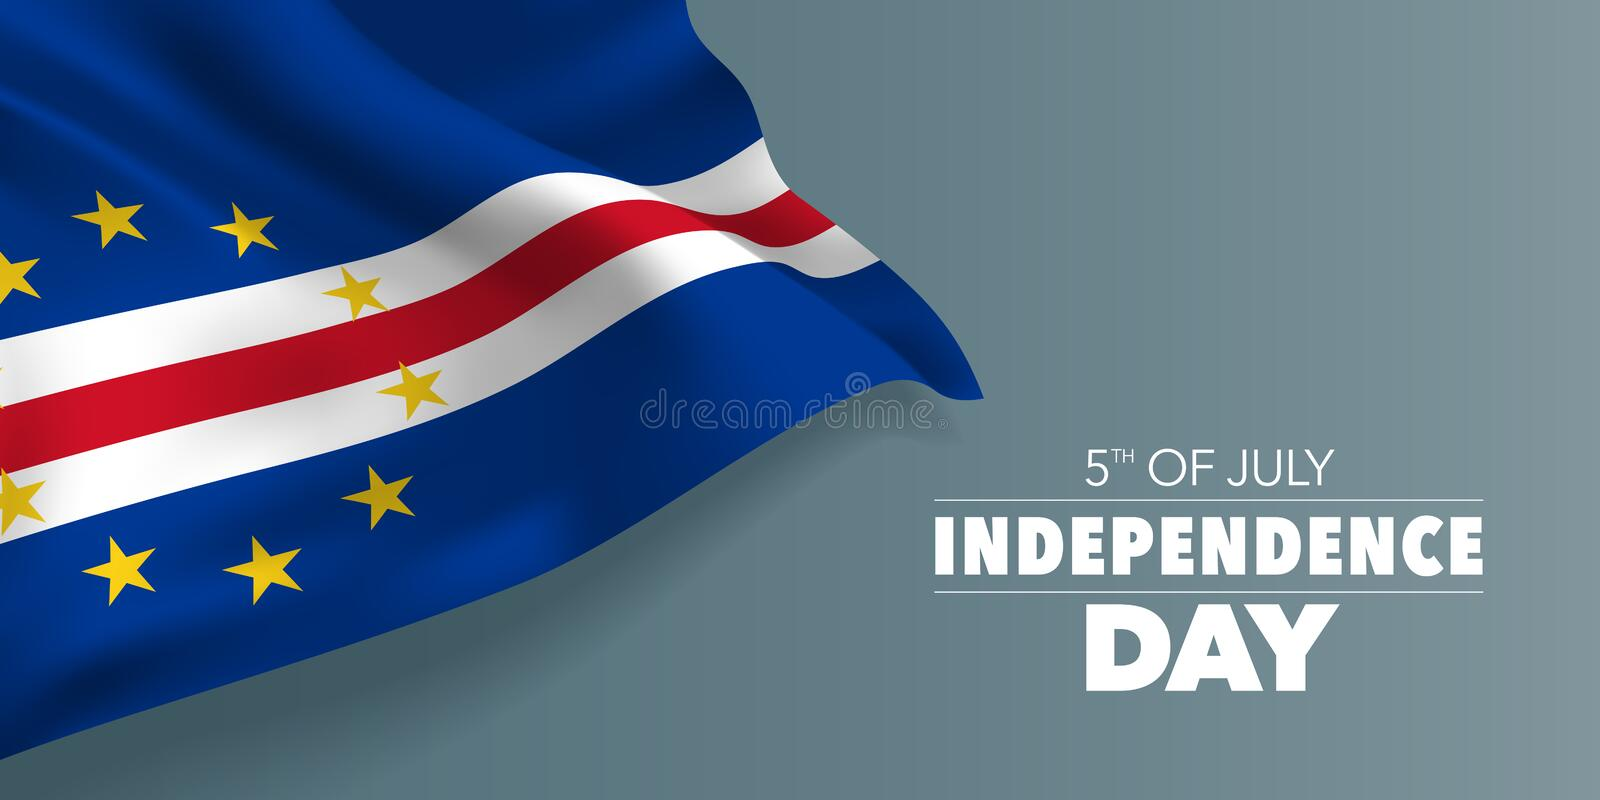 Cape Verde happy independence day greeting card, banner with template text vector illustration. Cabo Verde memorial holiday 5th of July design element with vector illustration